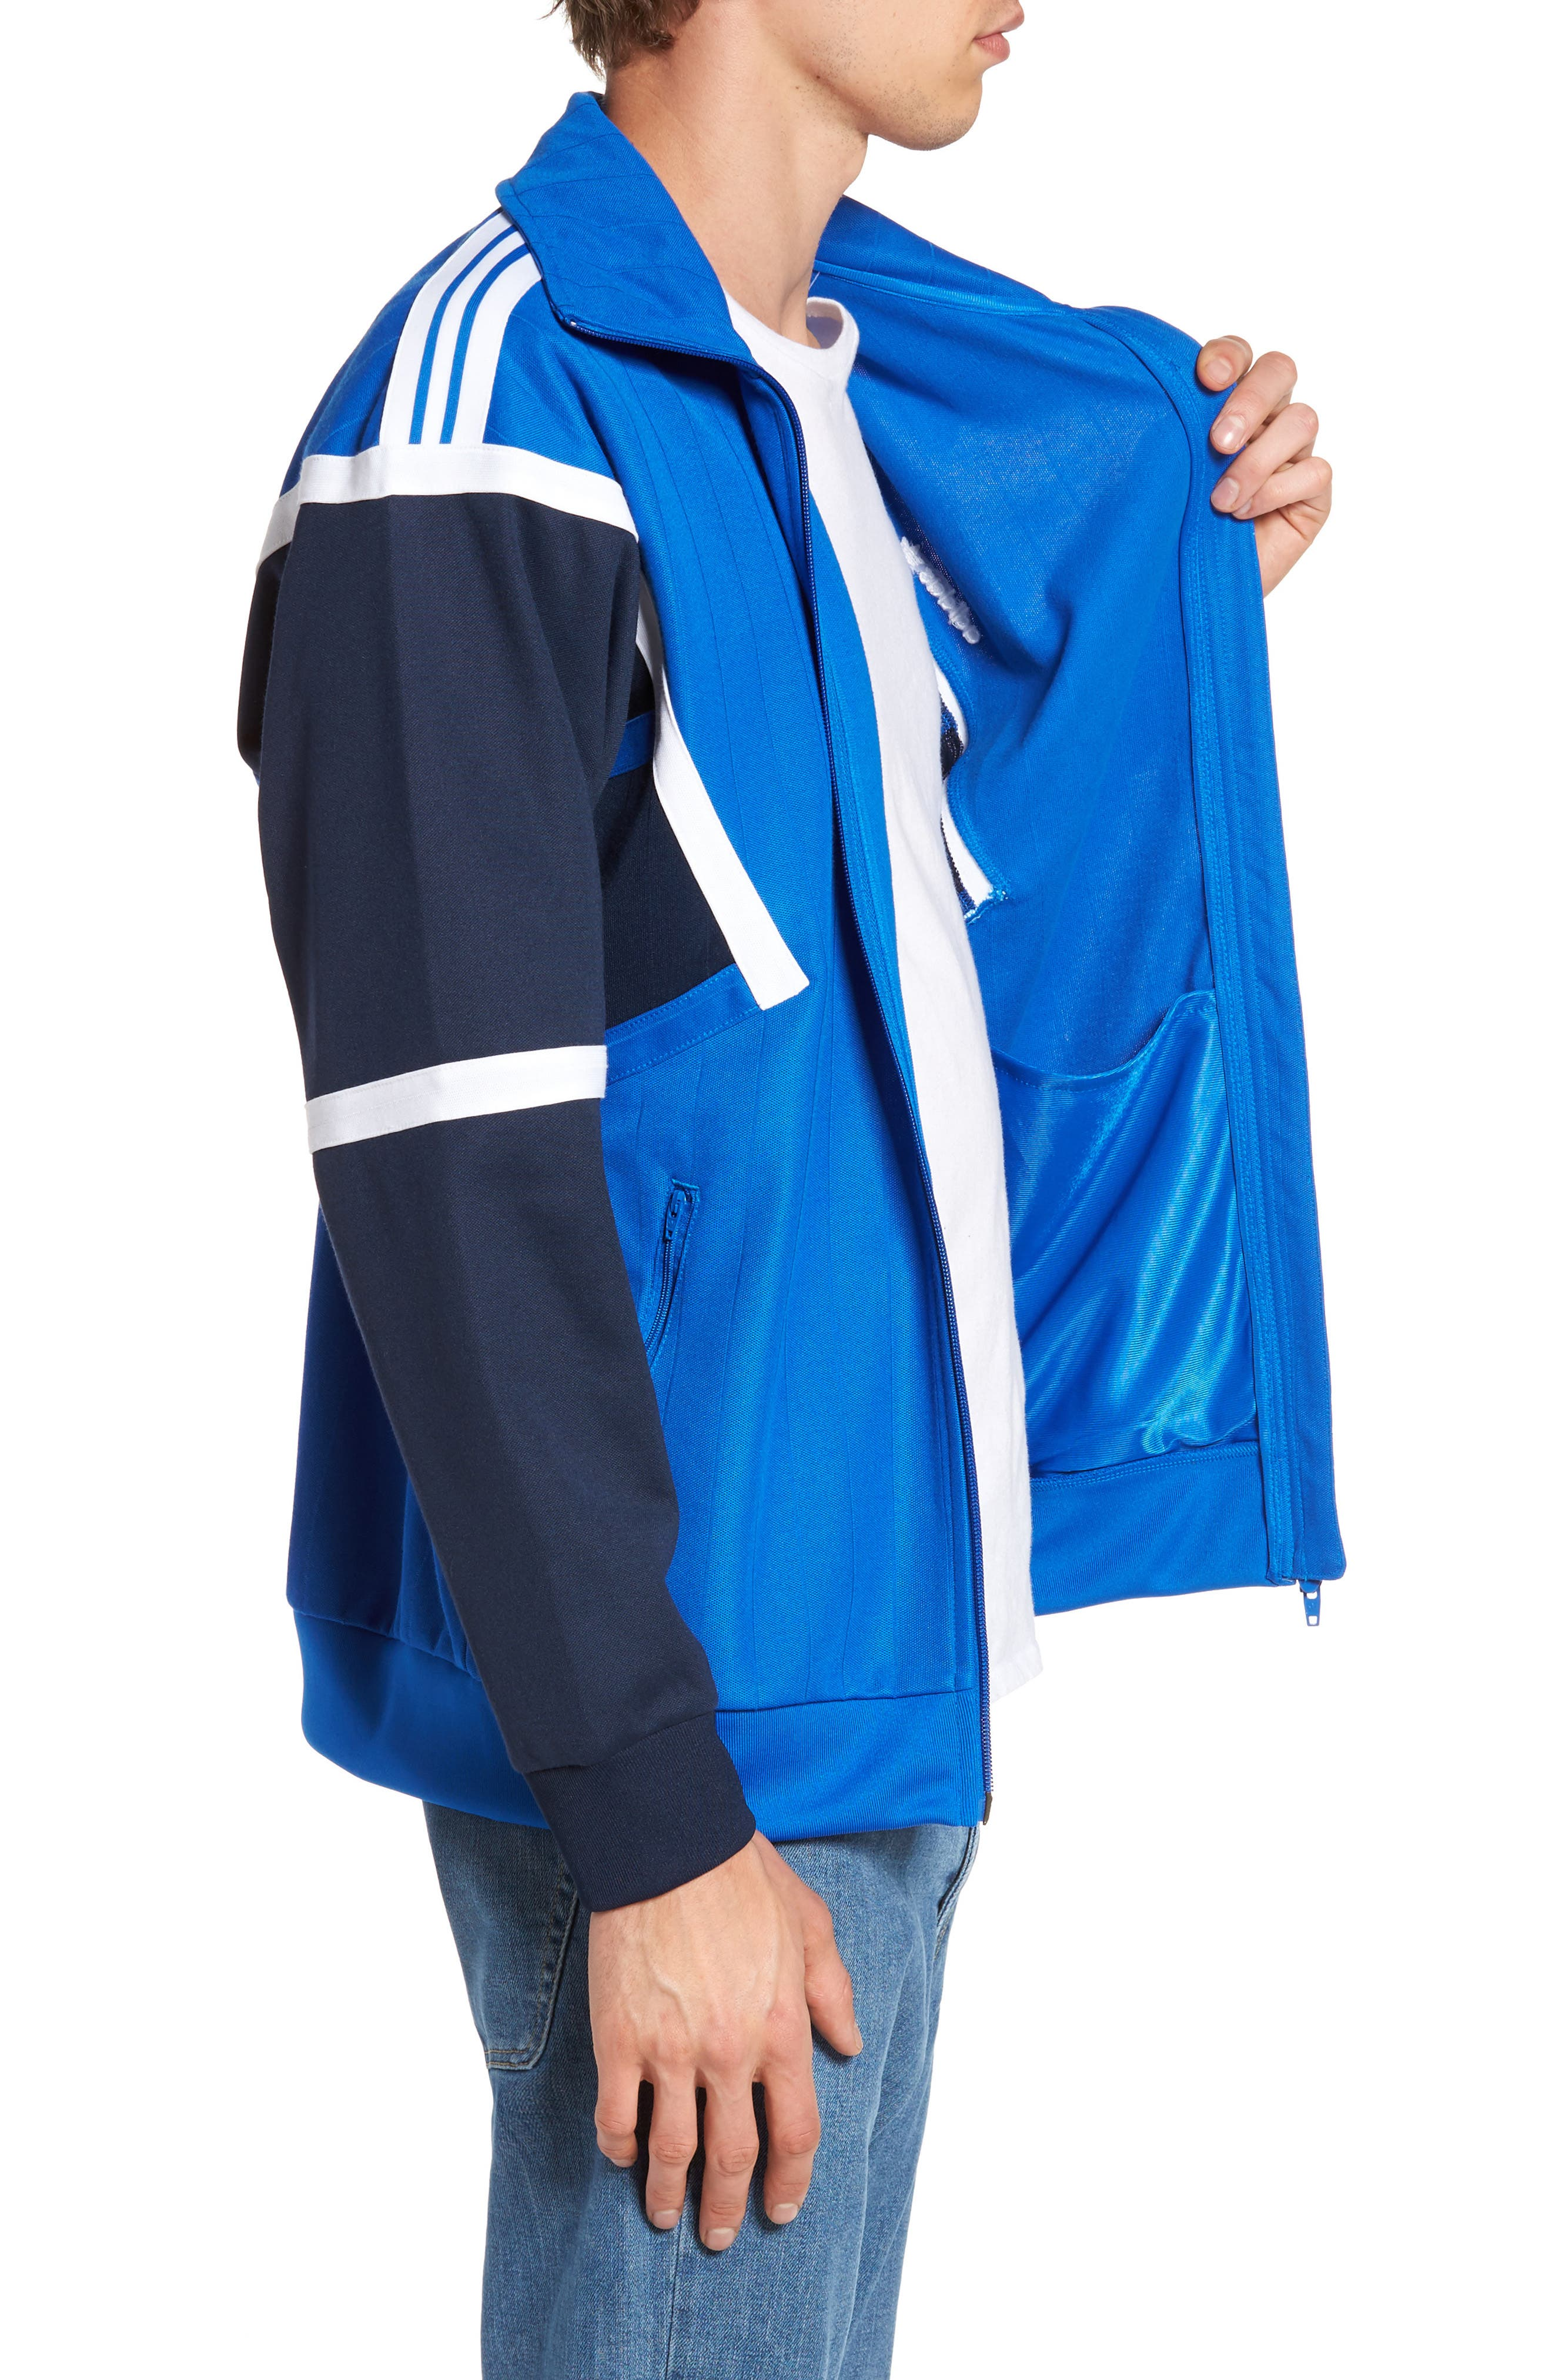 Water Resistant Training Track Jacket,                             Alternate thumbnail 3, color,                             435